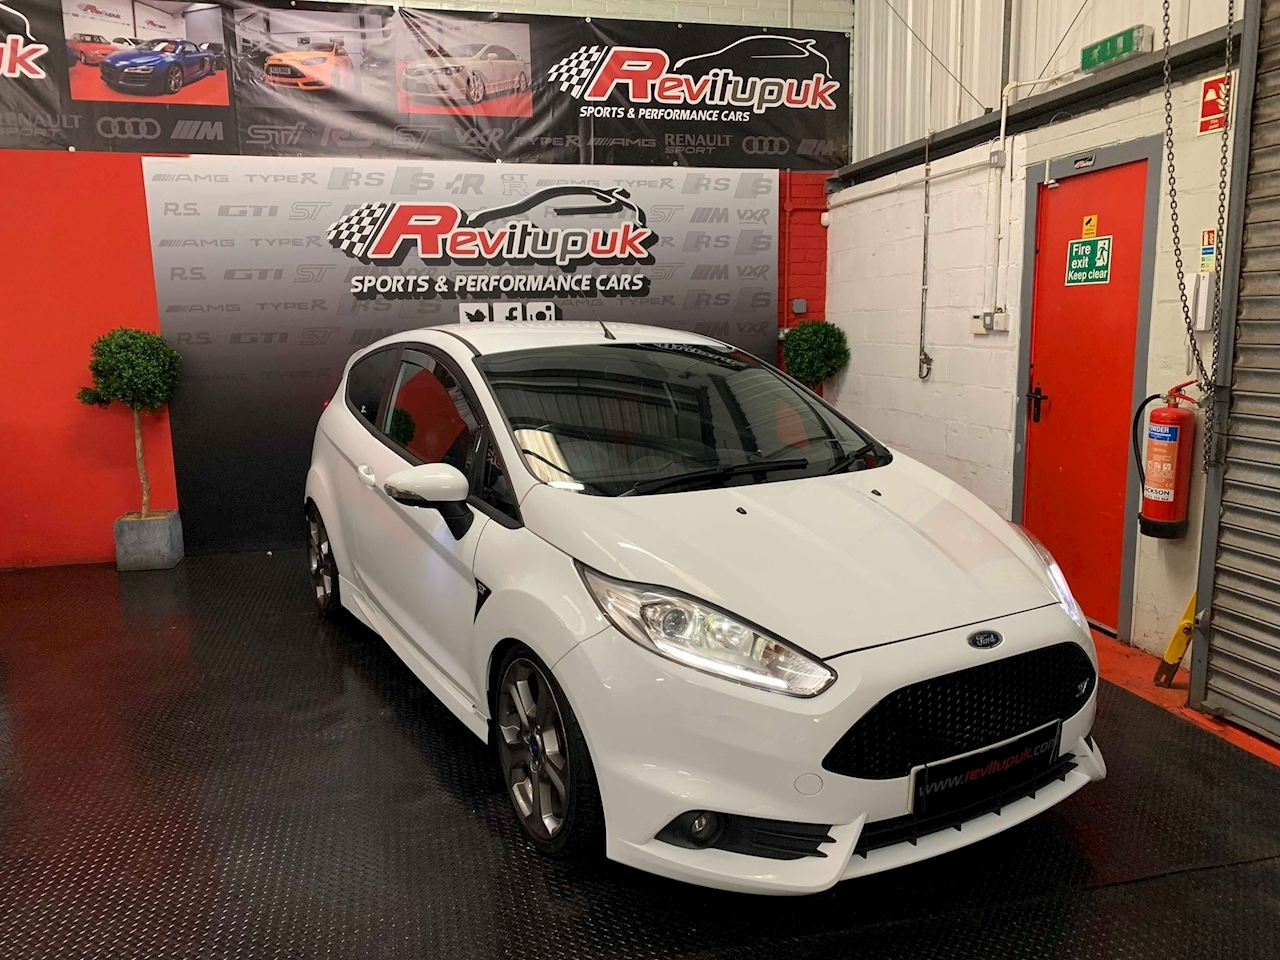 Fiesta St-3 Hatchback 1.6 Manual Petrol